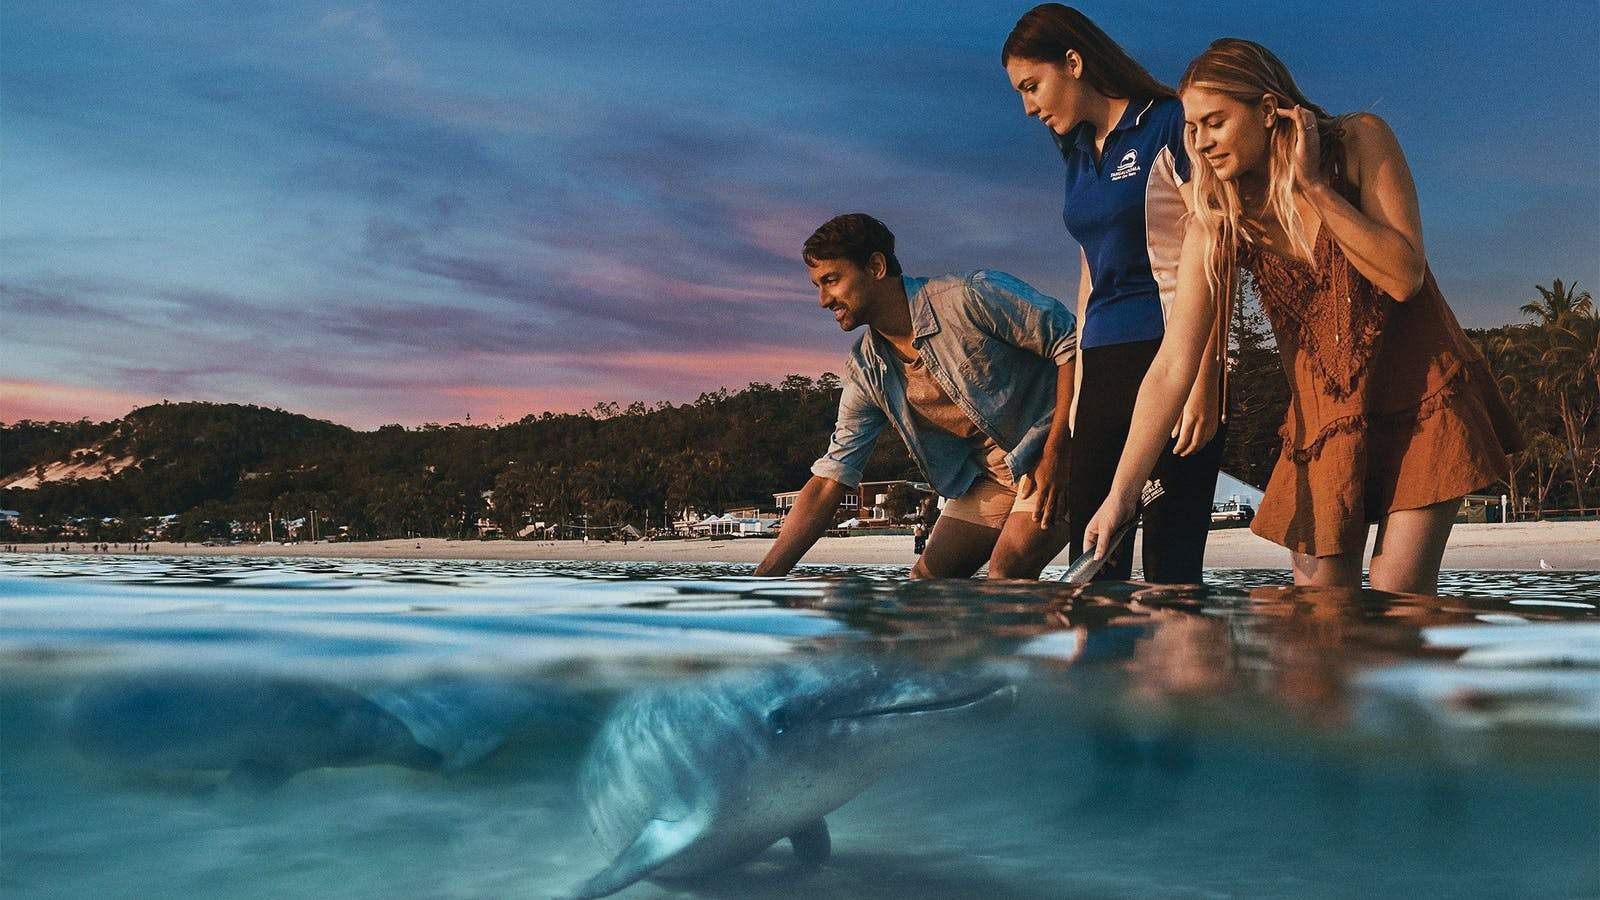 Wild Dolphin Feeding - Exclsuive to guests of Tangalooma Island Resort. Conditions apply